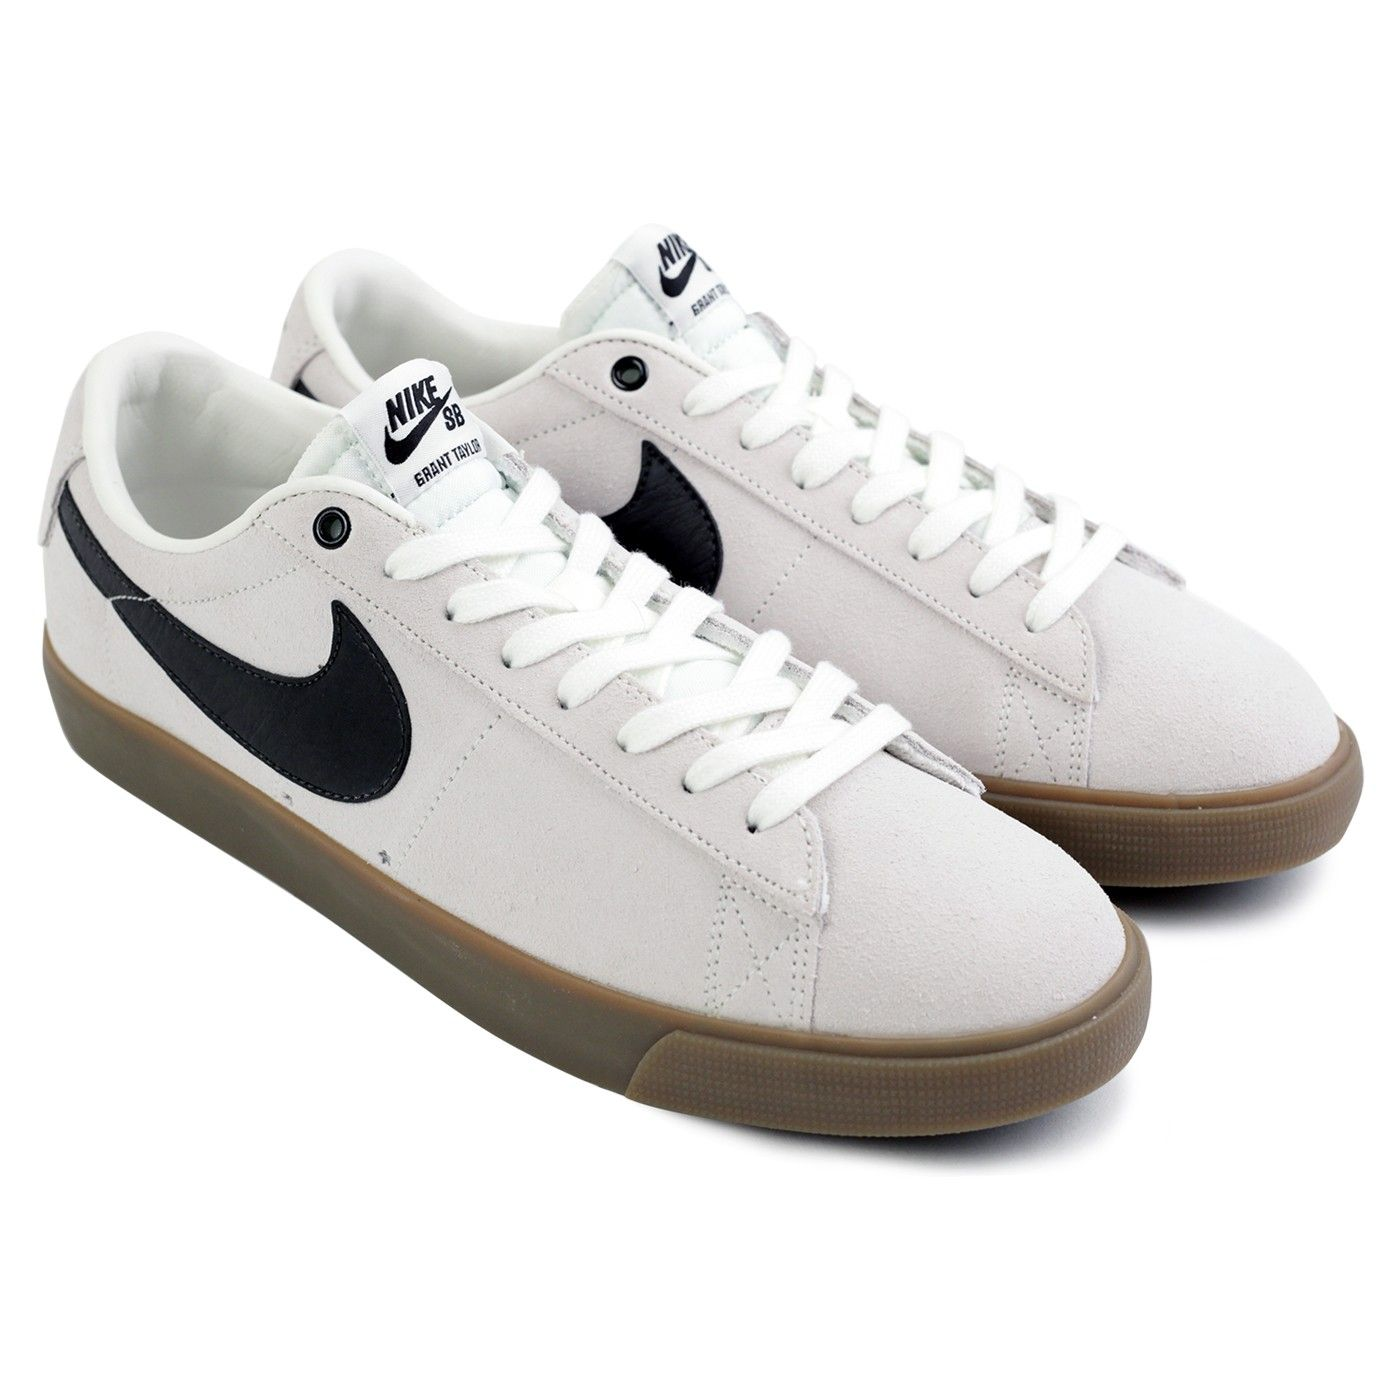 sports shoes 86e26 a8269 Blazer Low Grant Taylor Shoes in Ivory / Black-Gum Light ...